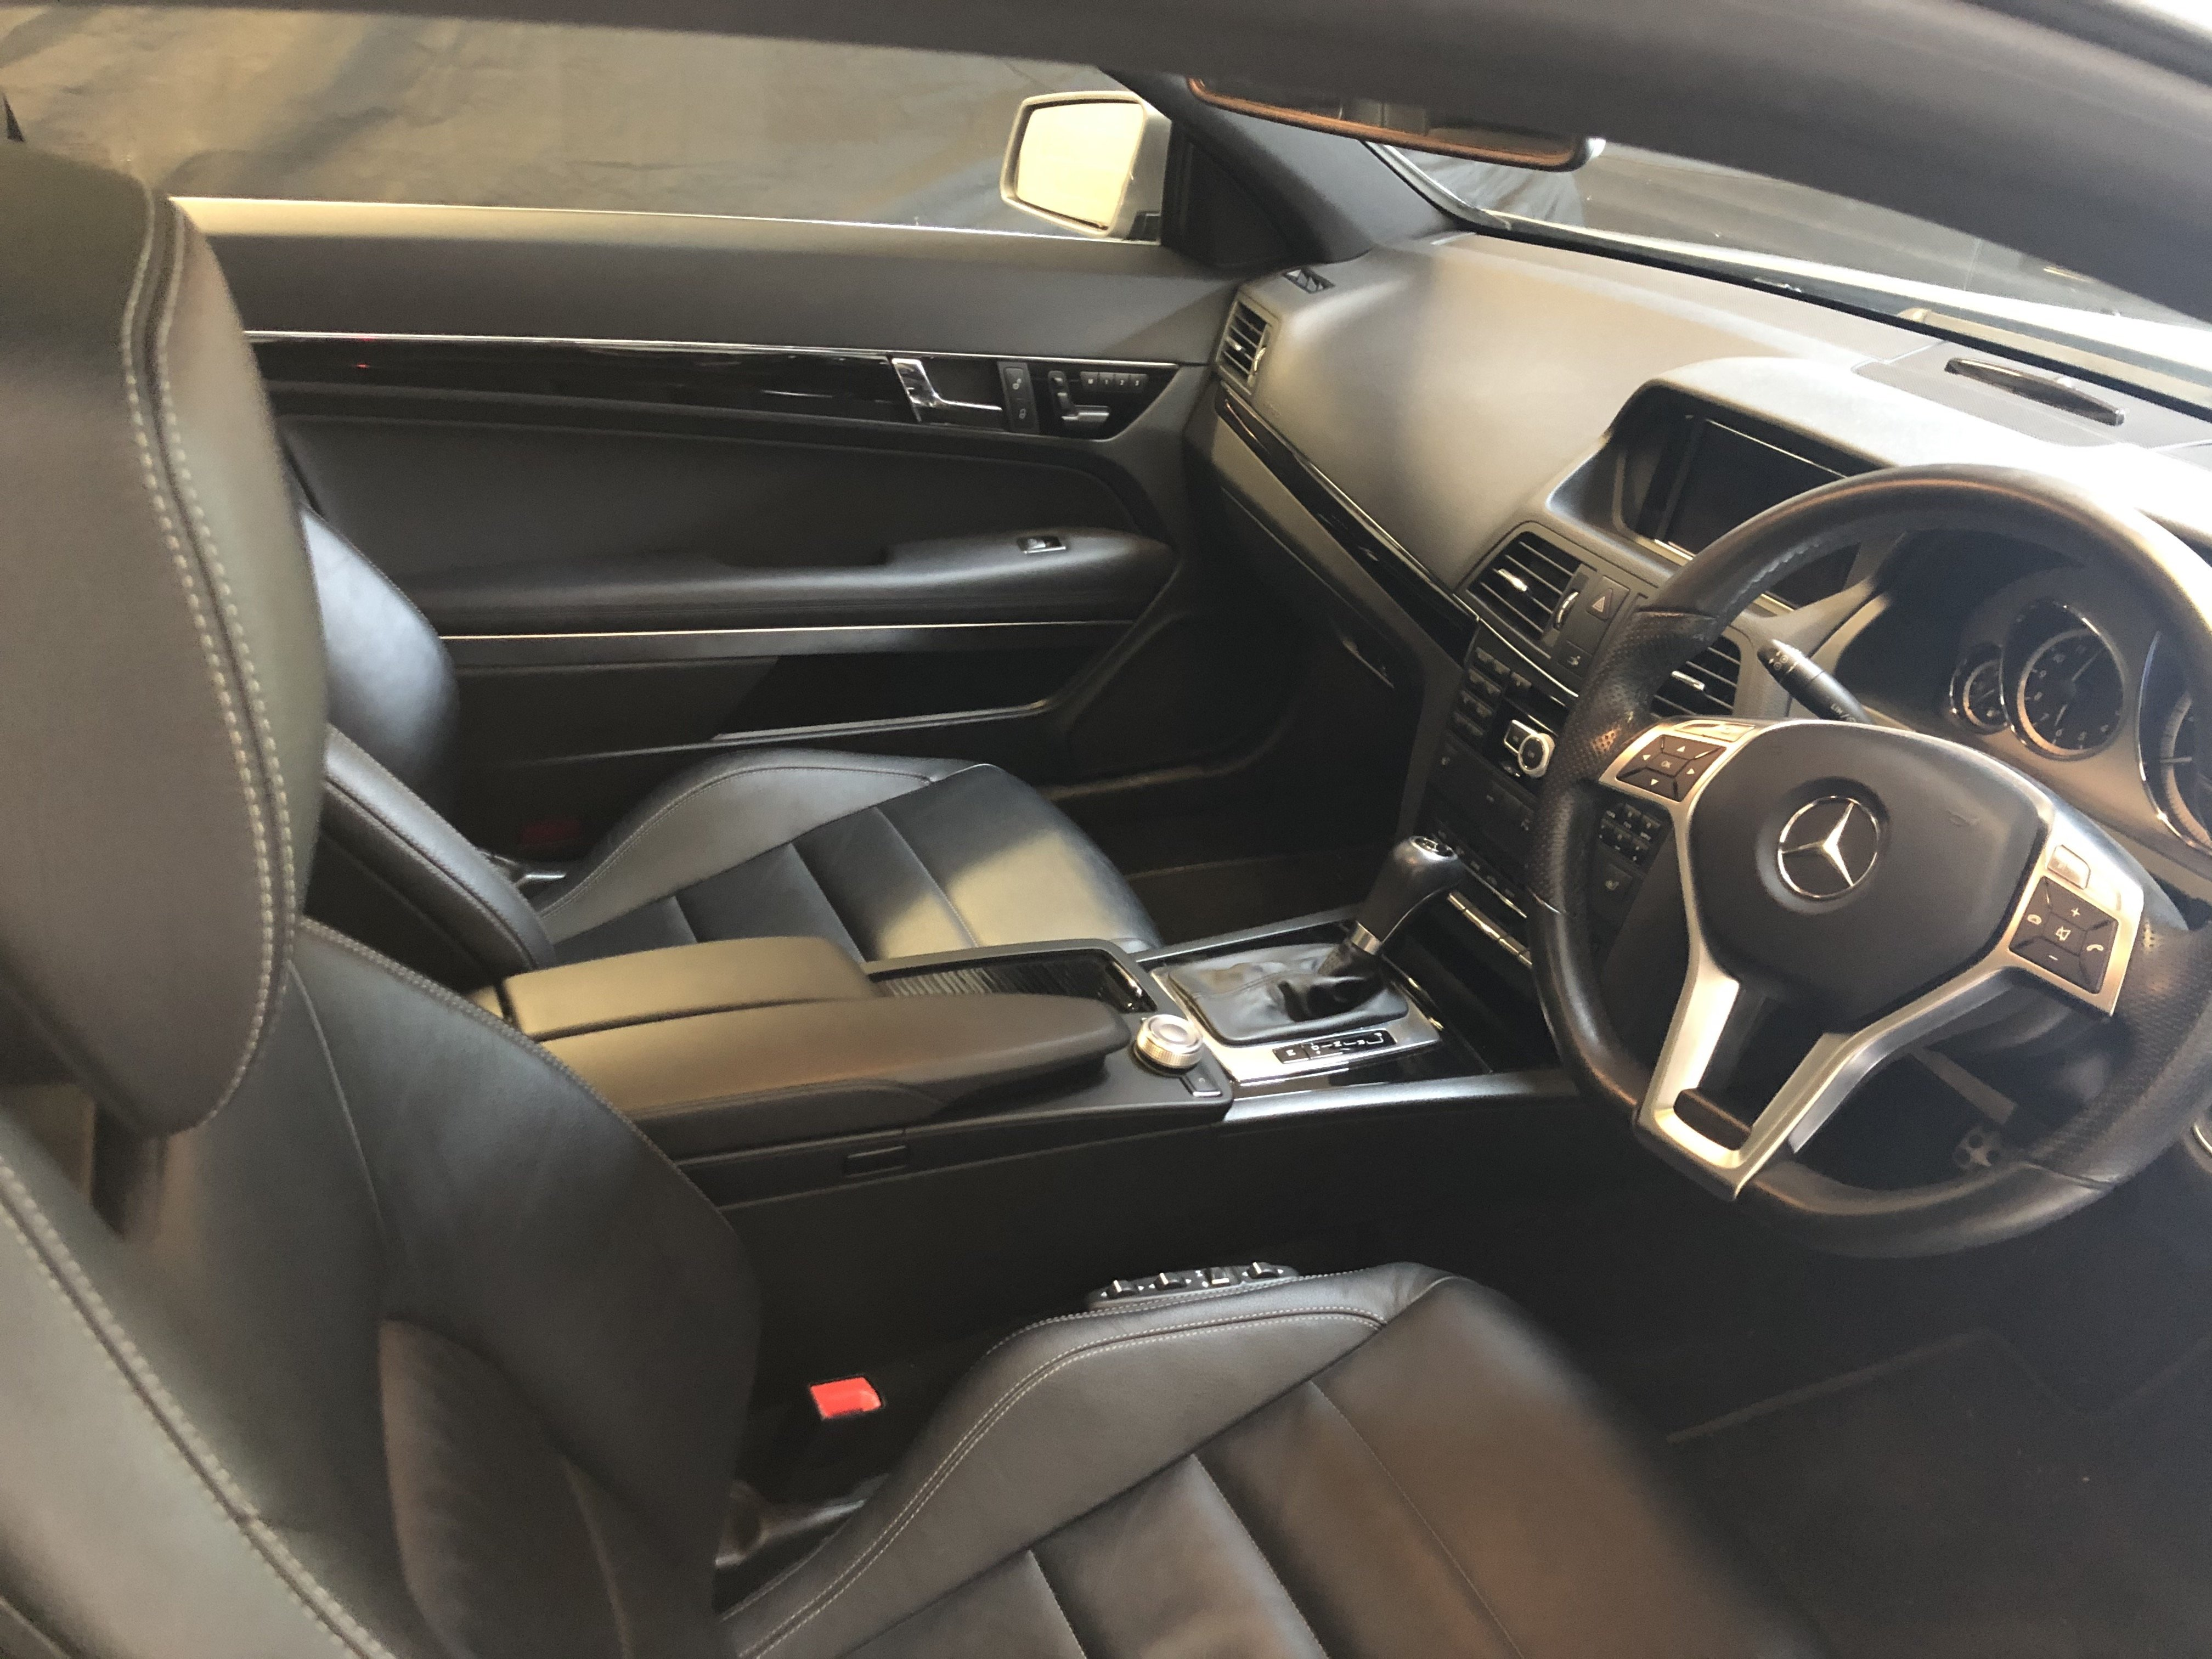 2011 Mercedes E Class Coupe 4.7 twin-turbo V8 (C207/M278 - MY12) For Sale (picture 4 of 6)